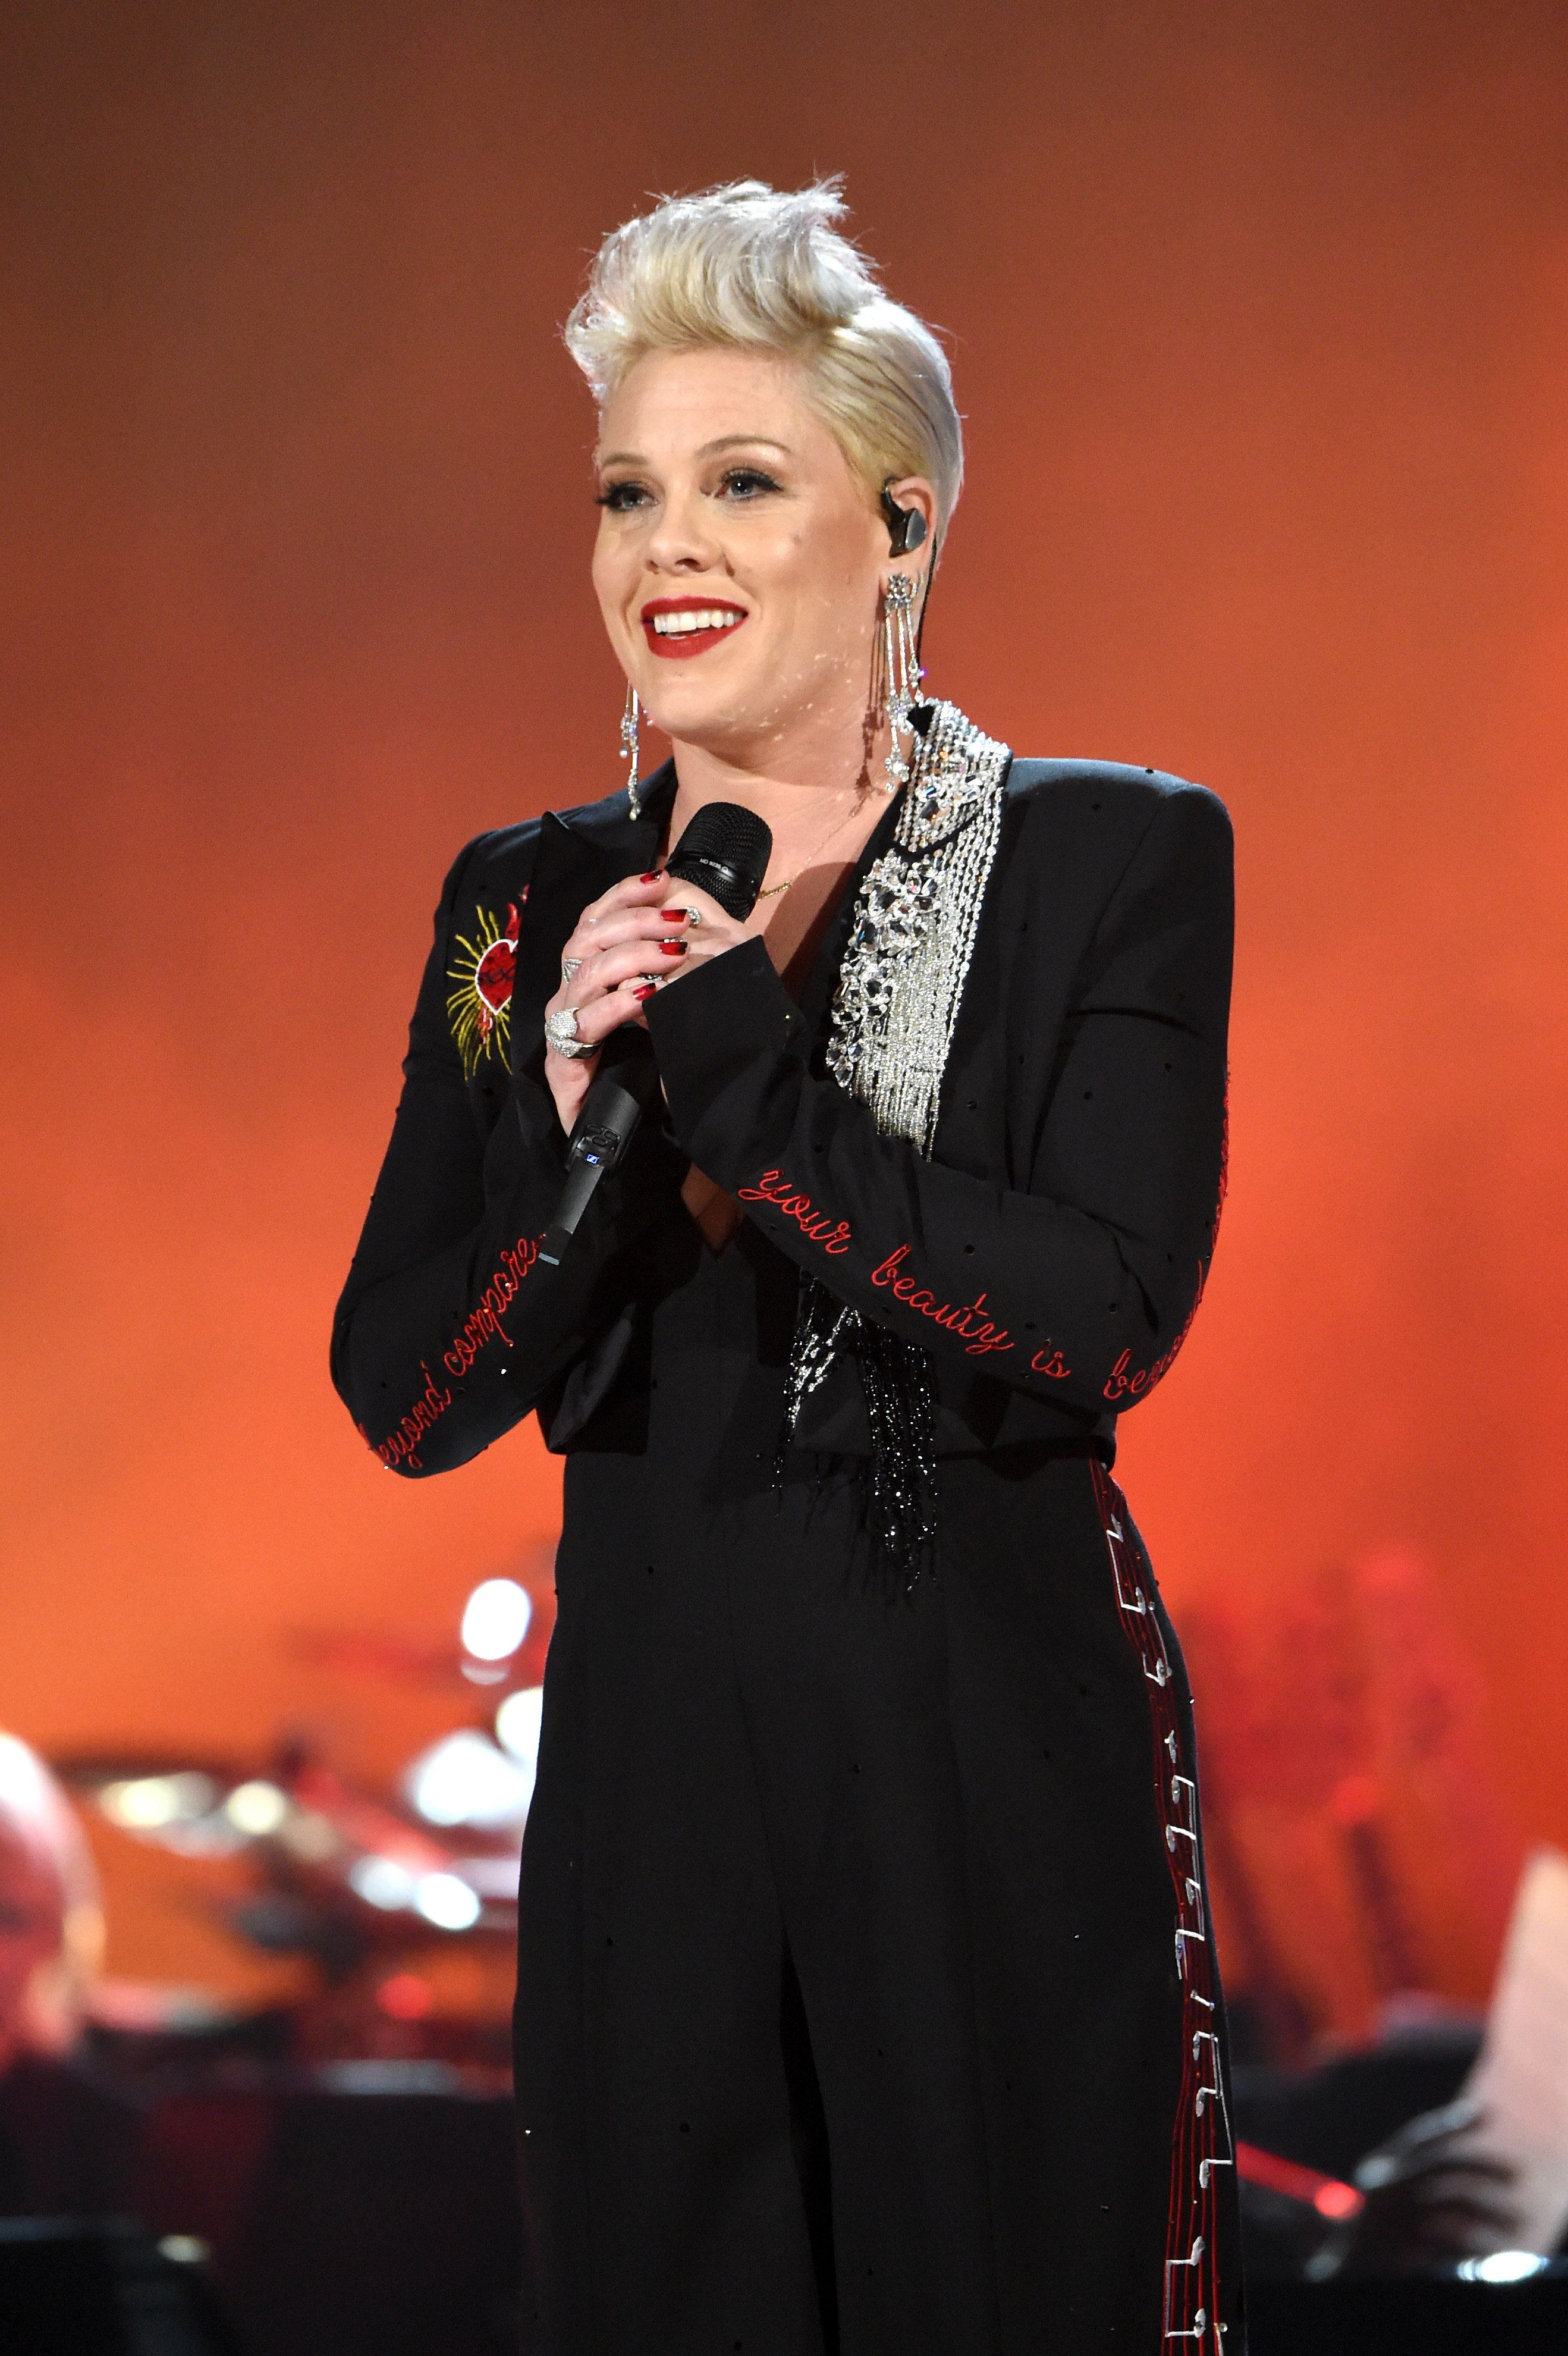 LOS ANGELES, CA - FEBRUARY 08:  P!nk performs onstage during MusiCares Person of the Year honoring Dolly Parton at Los Angeles Convention Center on February 8, 2019 in Los Angeles, California.  (Photo by Kevin Mazur/Getty Images for The Recording Academy)